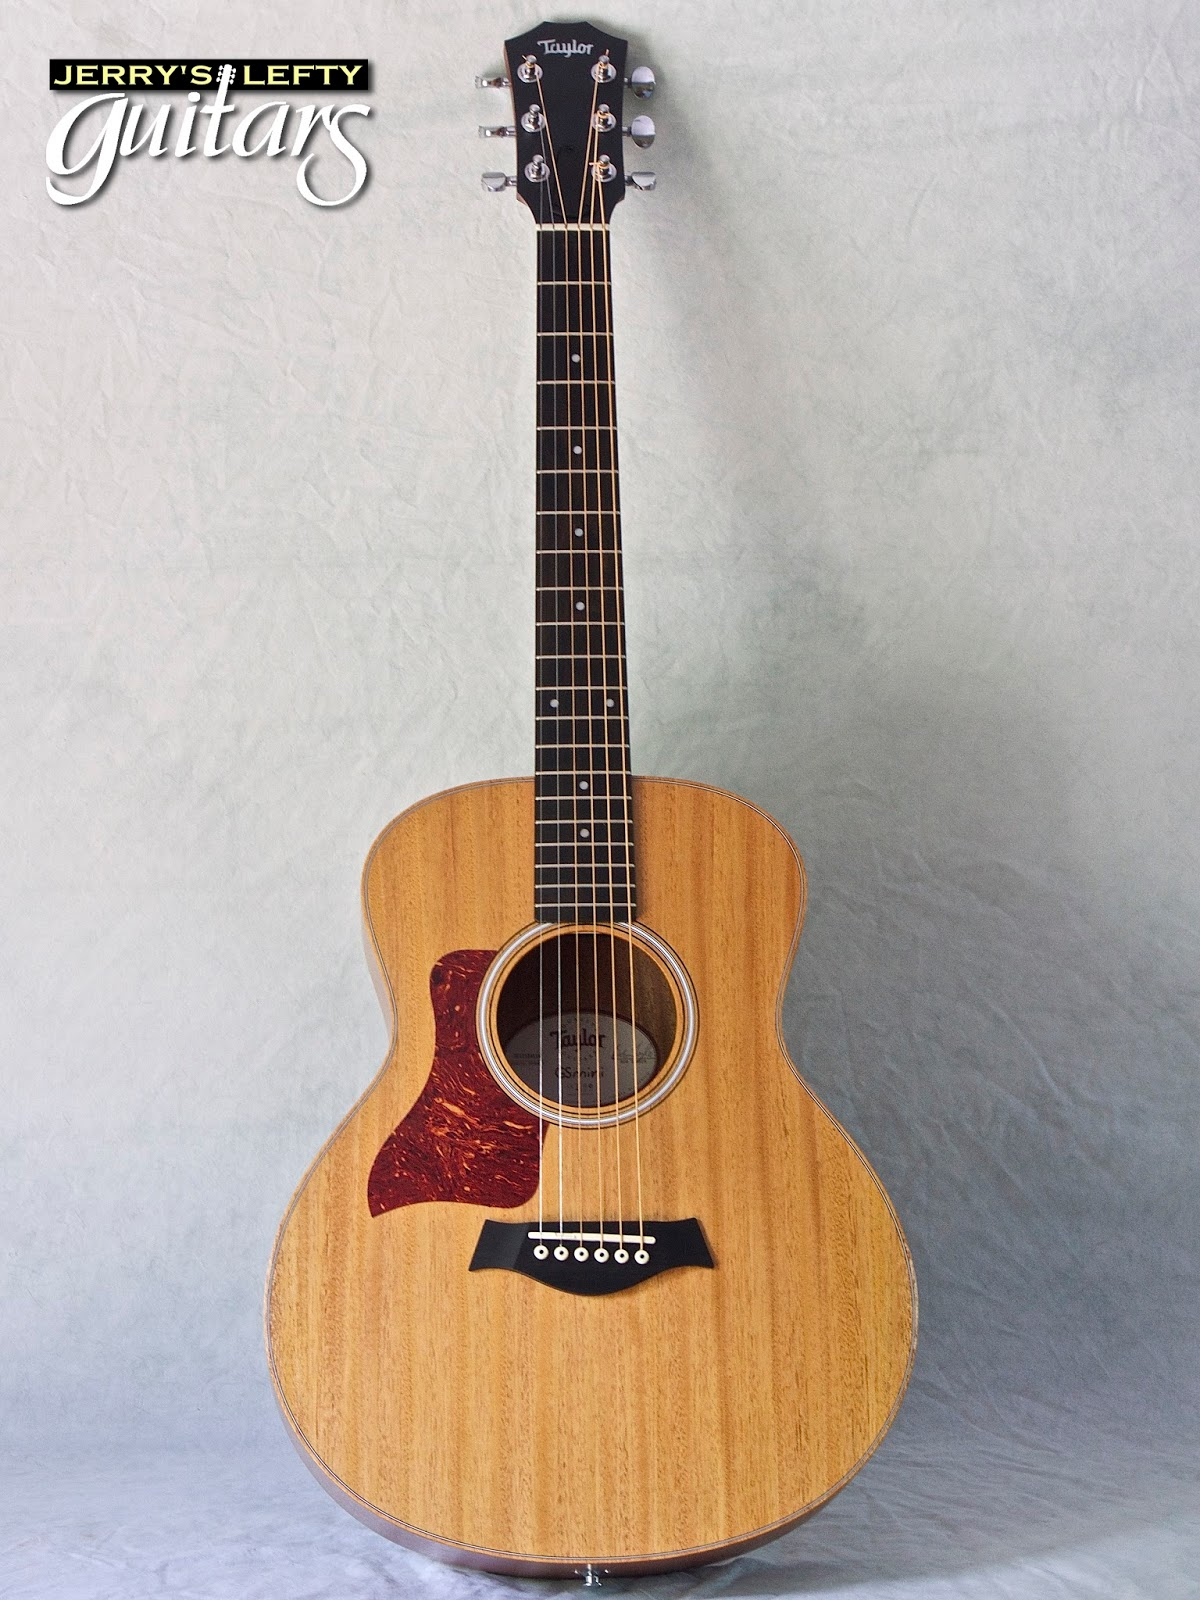 Taylor Gs Mini Used : jerry 39 s lefty guitars newest guitar arrivals updated weekly taylor gs mini mahogany used left ~ Hamham.info Haus und Dekorationen